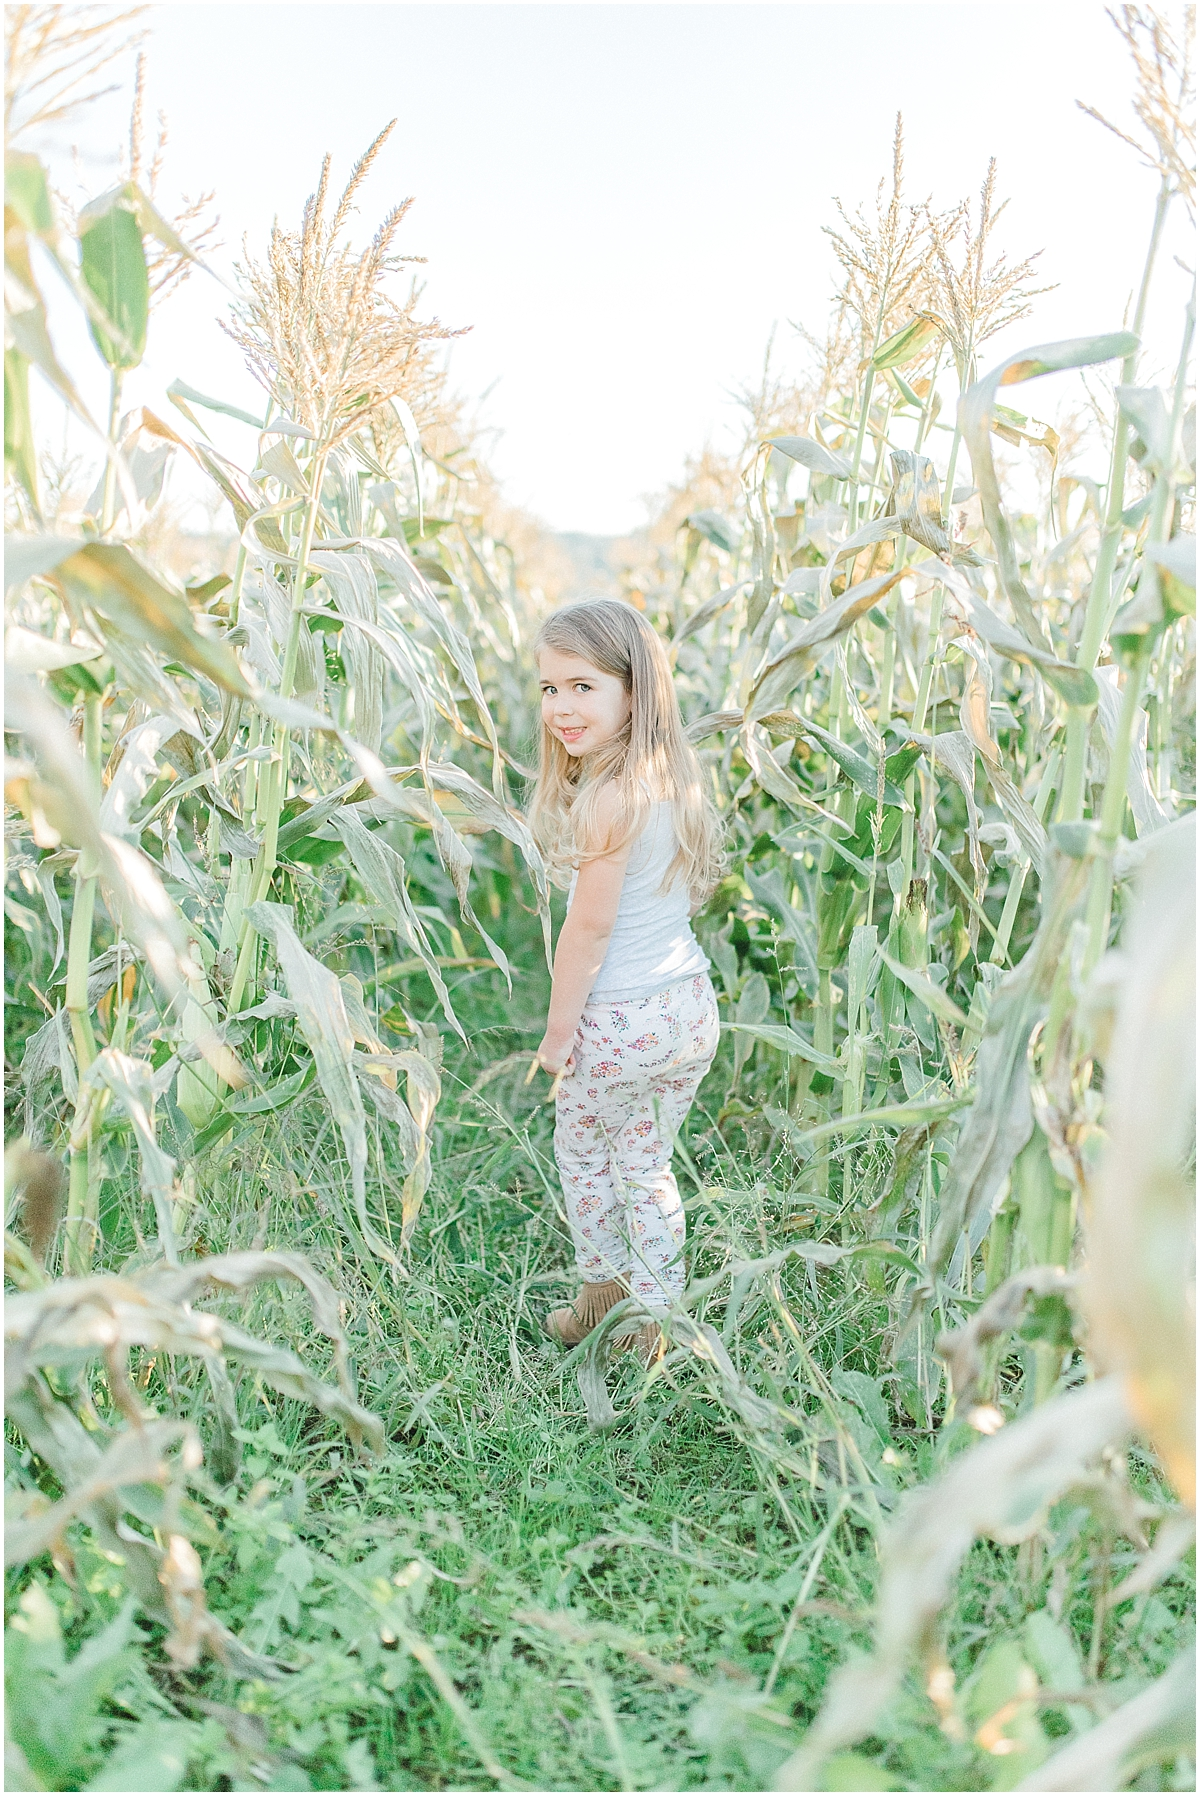 Pumpkin Patch Photo Shoot With Toddler and Mommy | Emma Rose Company Seattle Portland Light and Airy Wedding Photographer | Kindred Presets | Film_0012.jpg